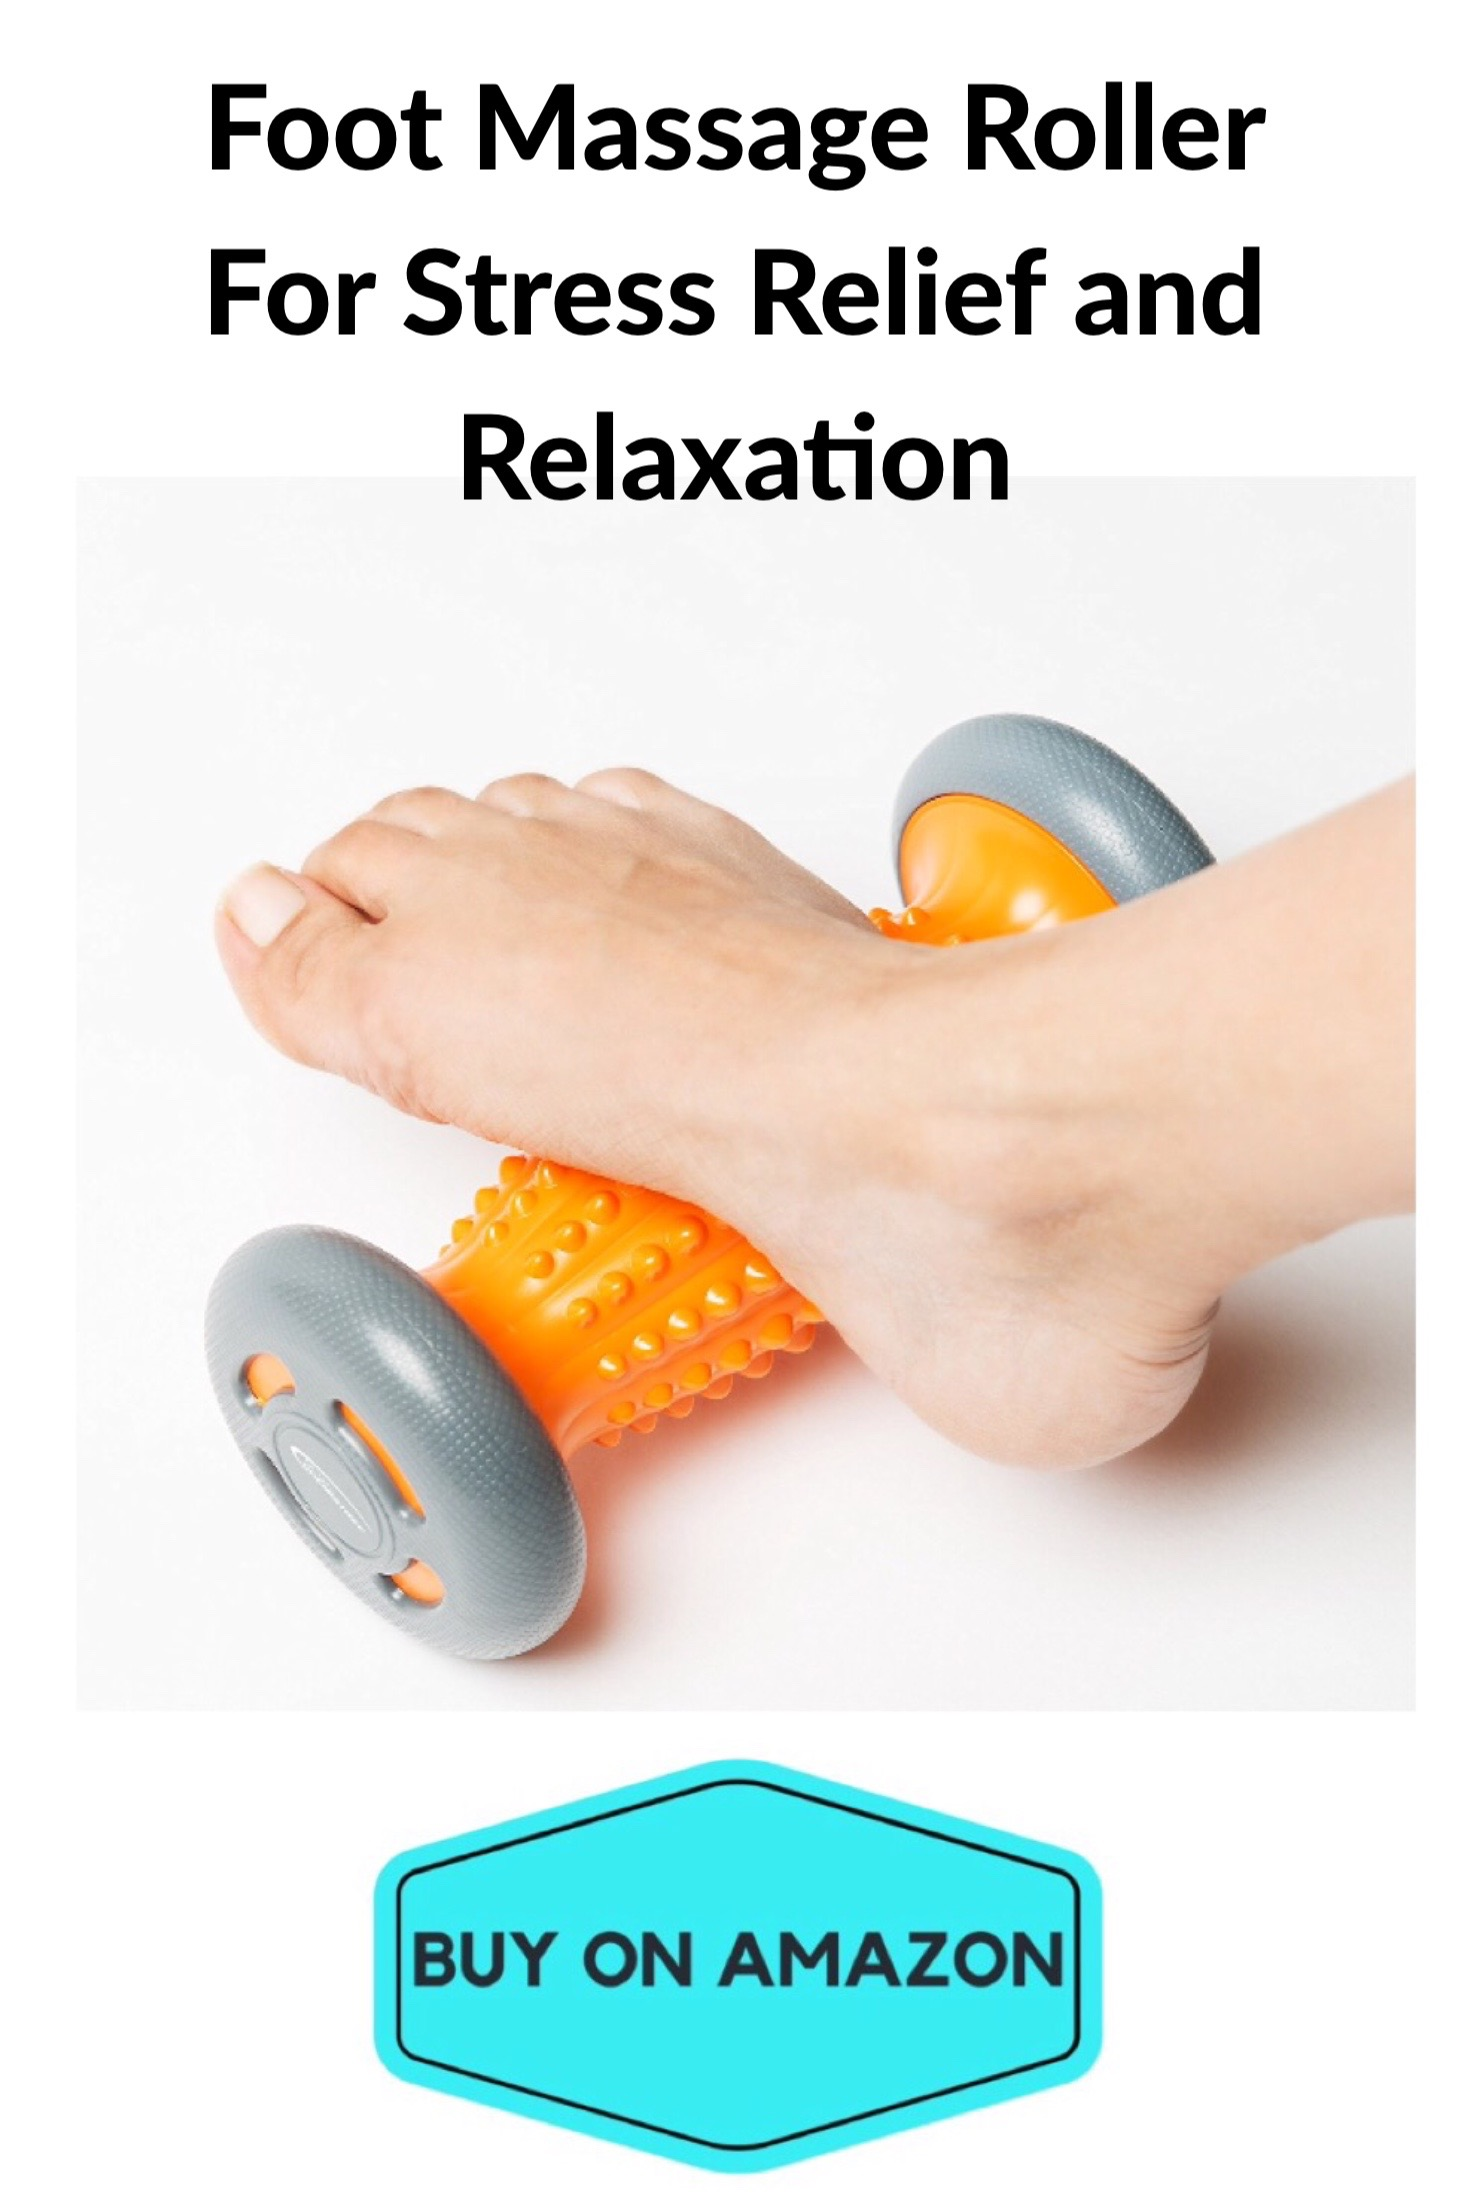 Foot Massage Roller For Stress Relief and Relaxation